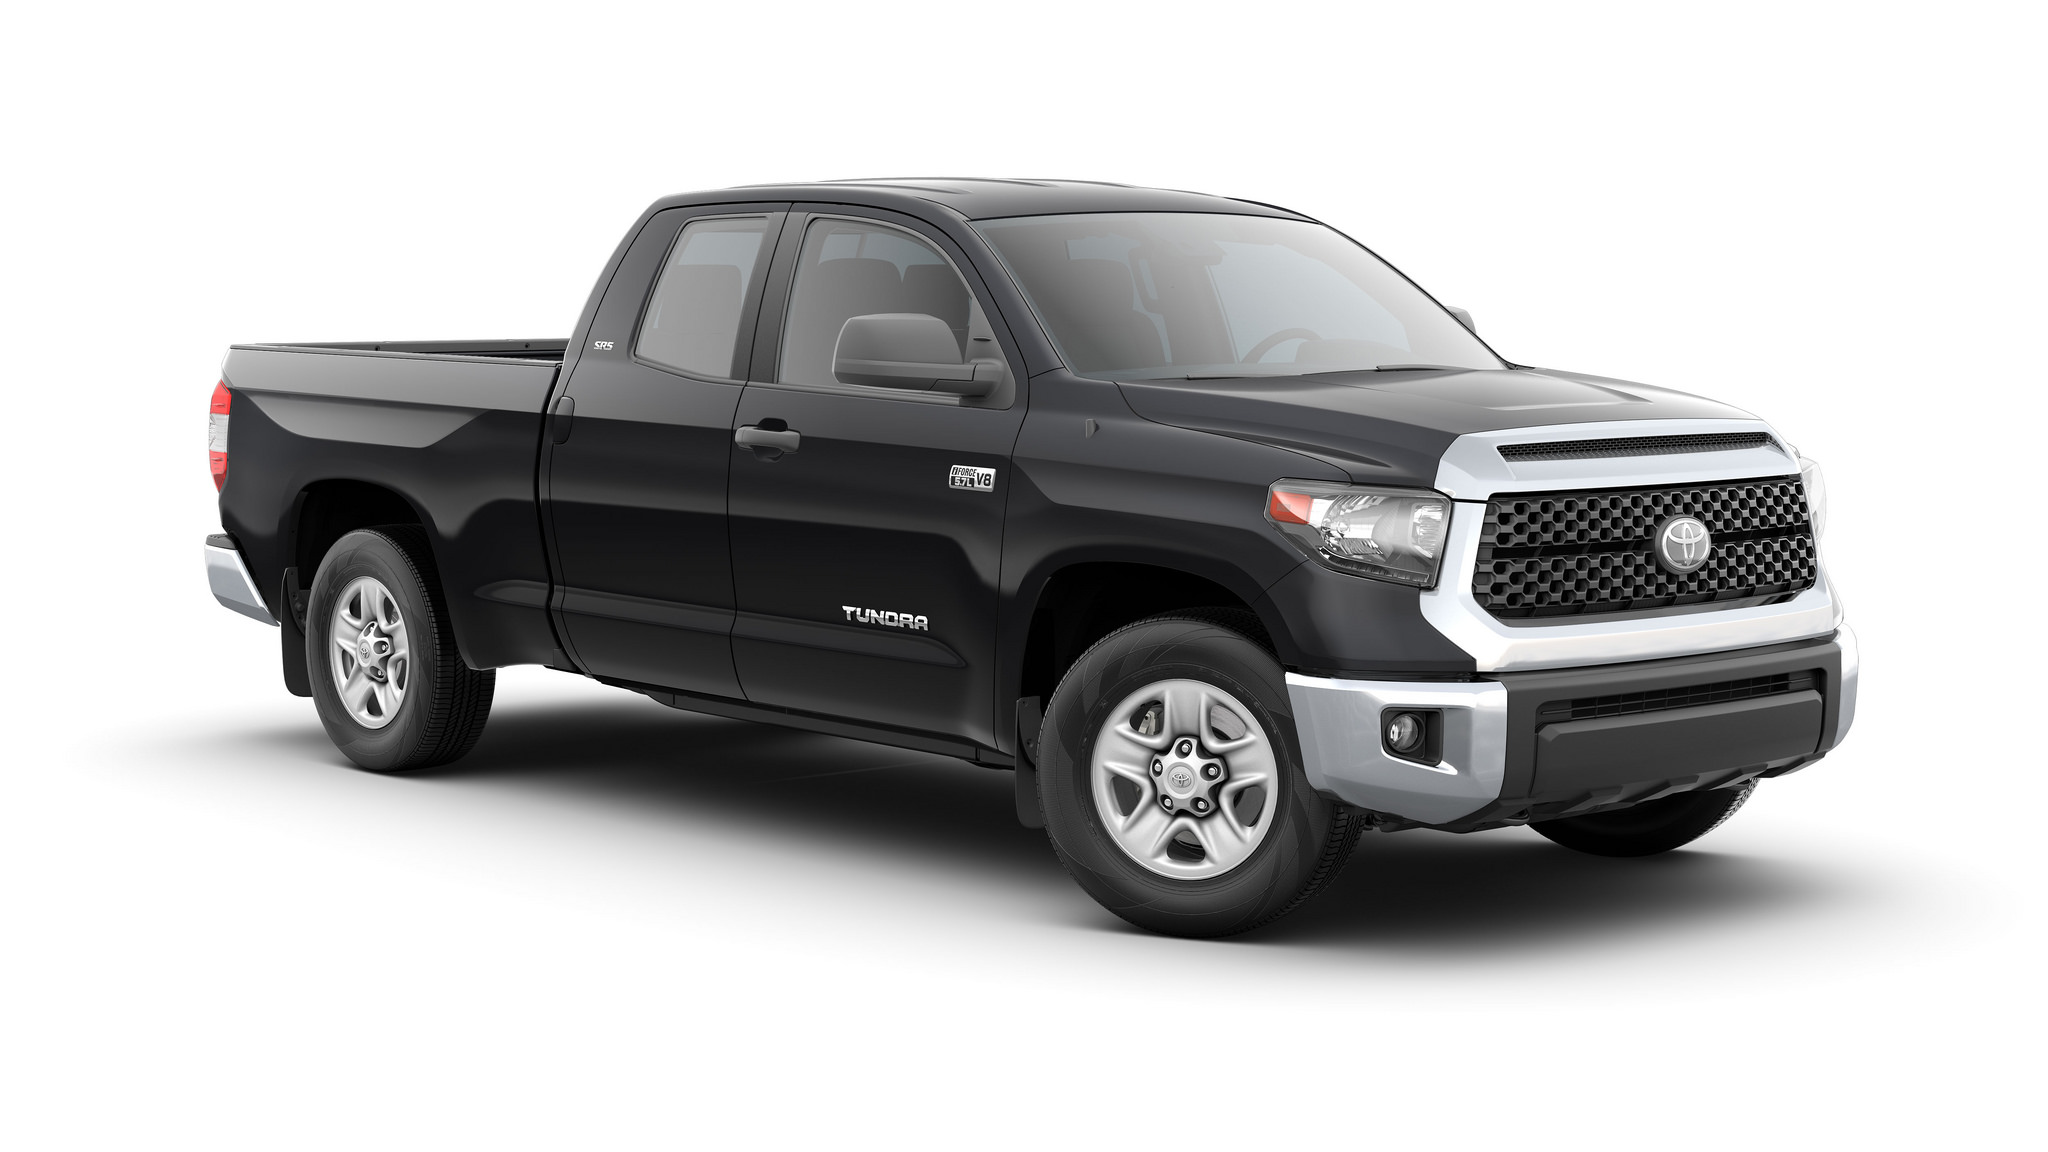 2018 Toyota Tundra Serving the Lehigh Valley | Krause Toyota - Breinigsville, PA